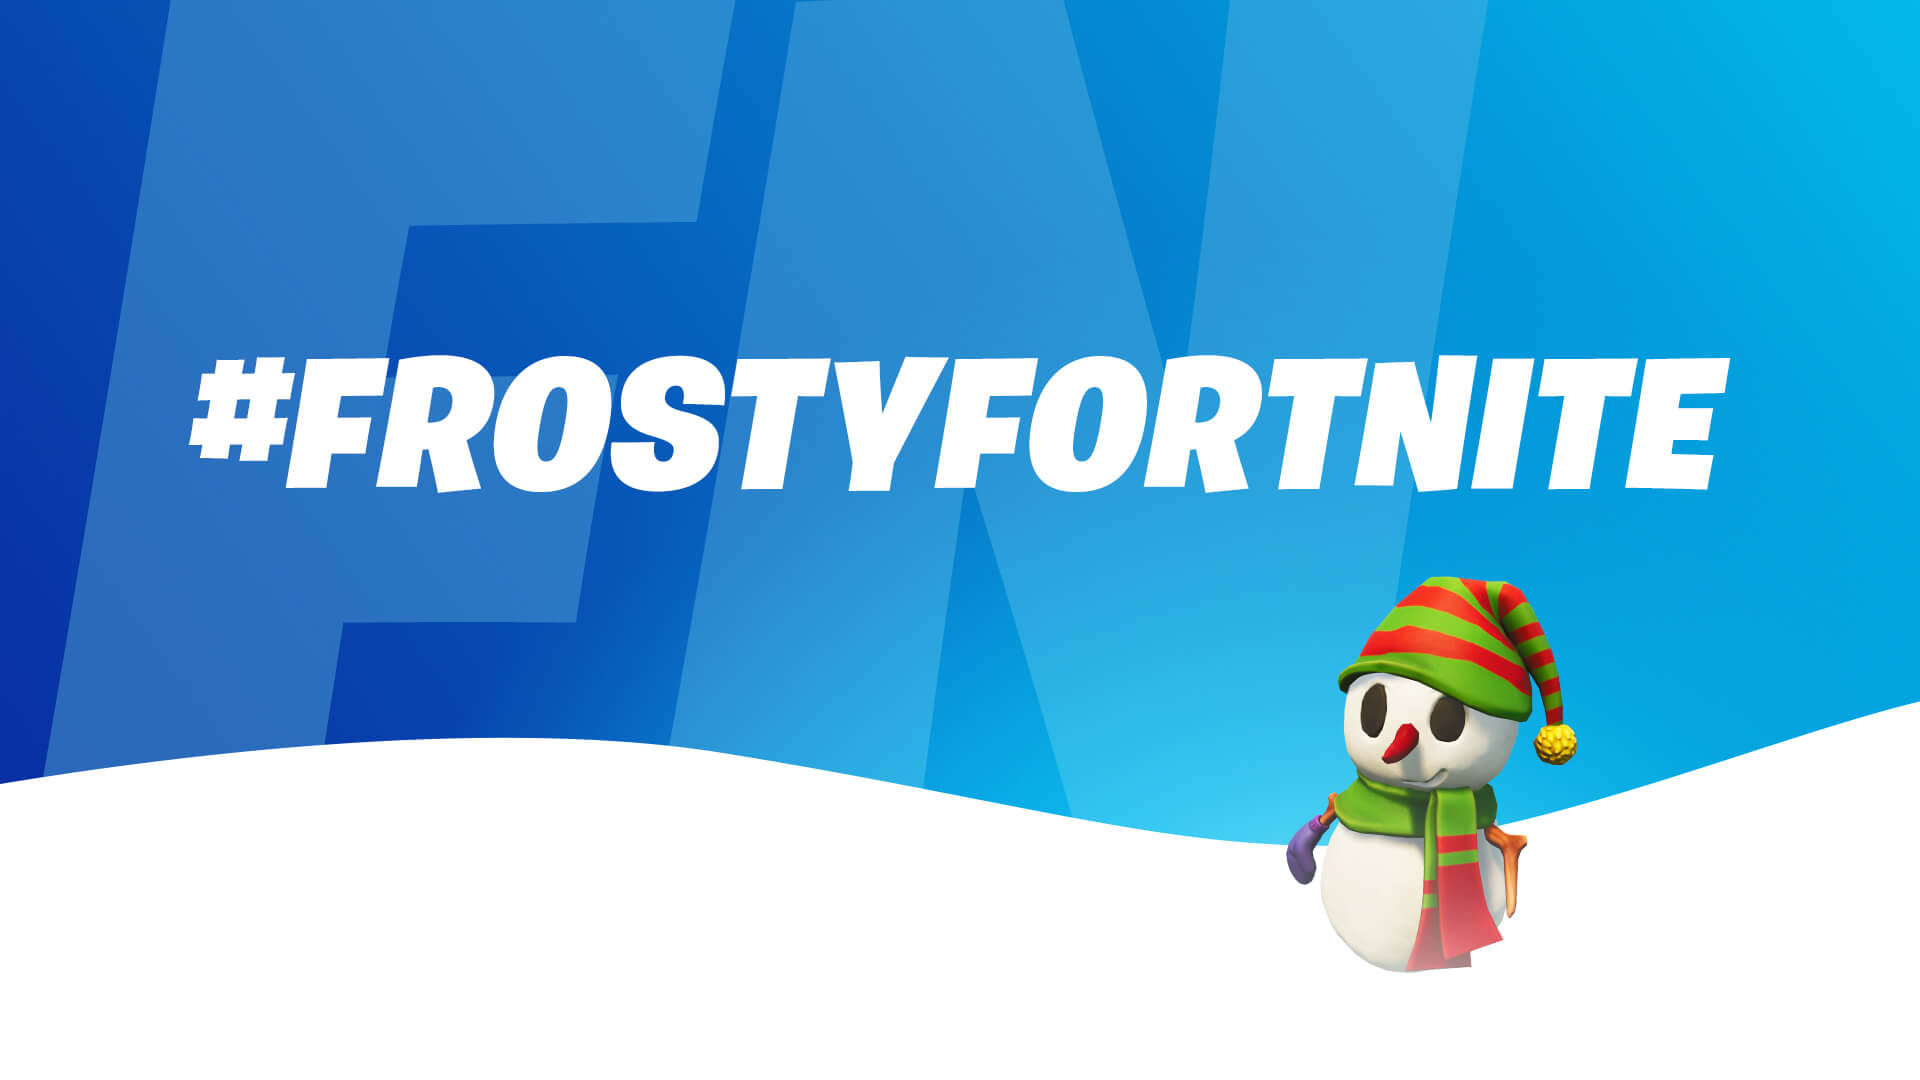 Frosty Fortnite